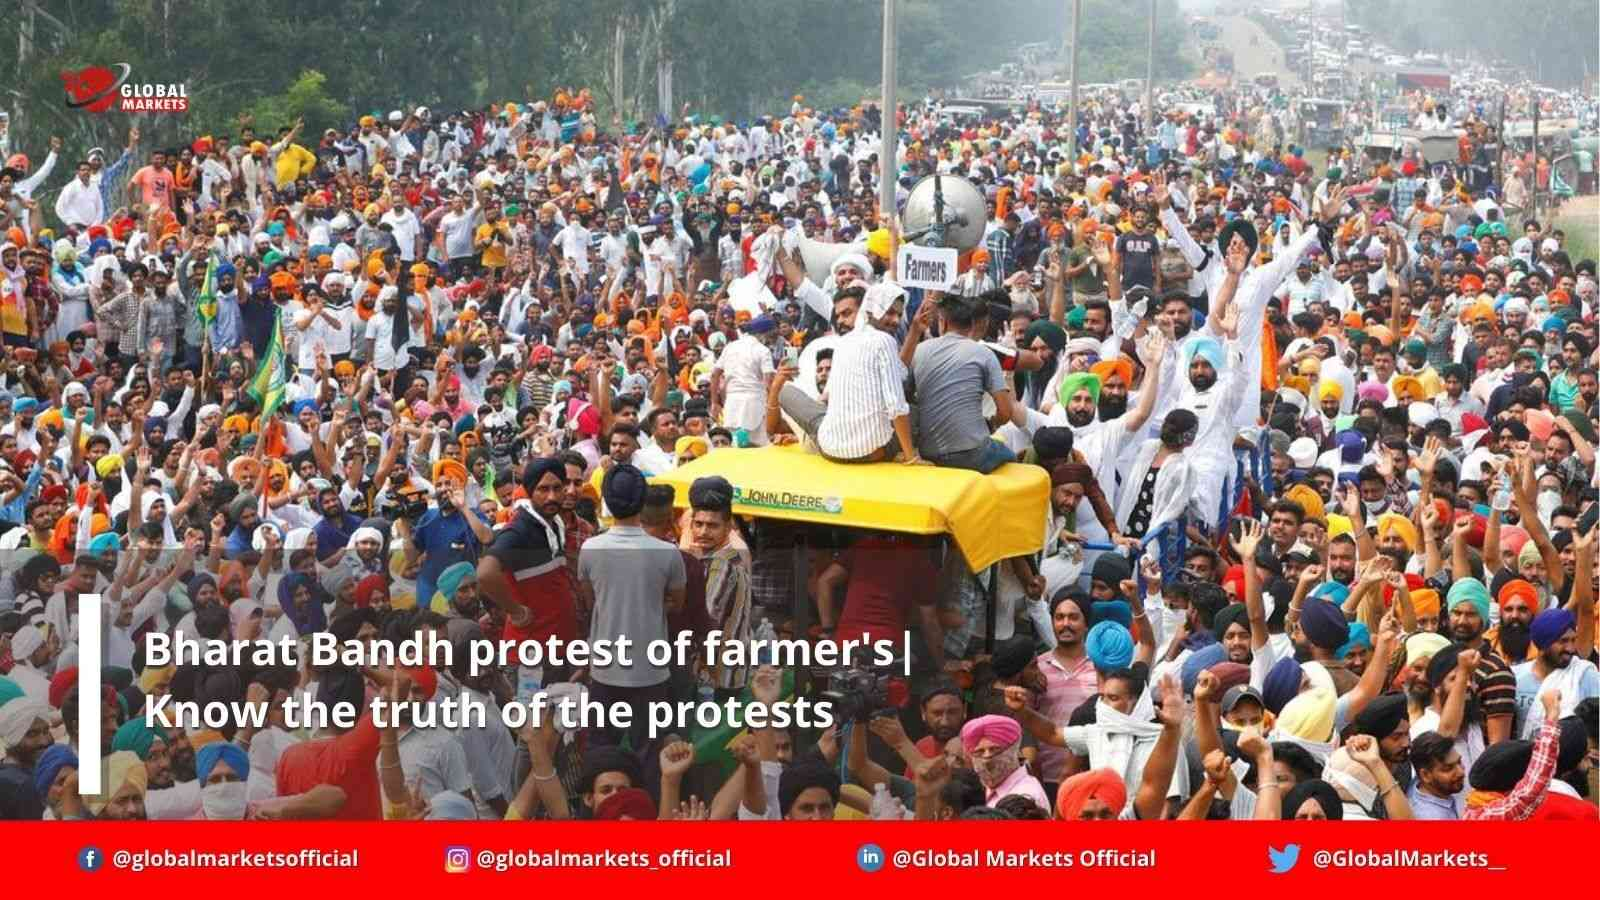 Bharat Bandh protest of farmer's : Know the truth of the protests